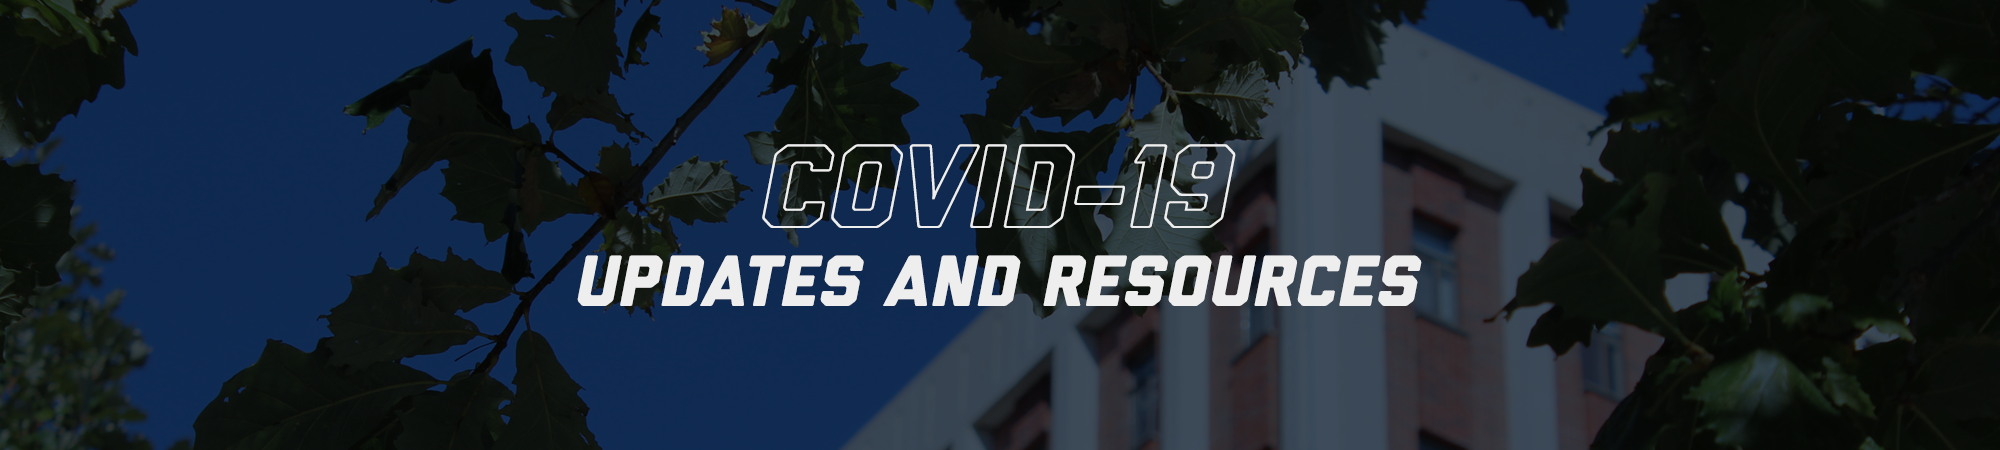 COVID-19 page banner